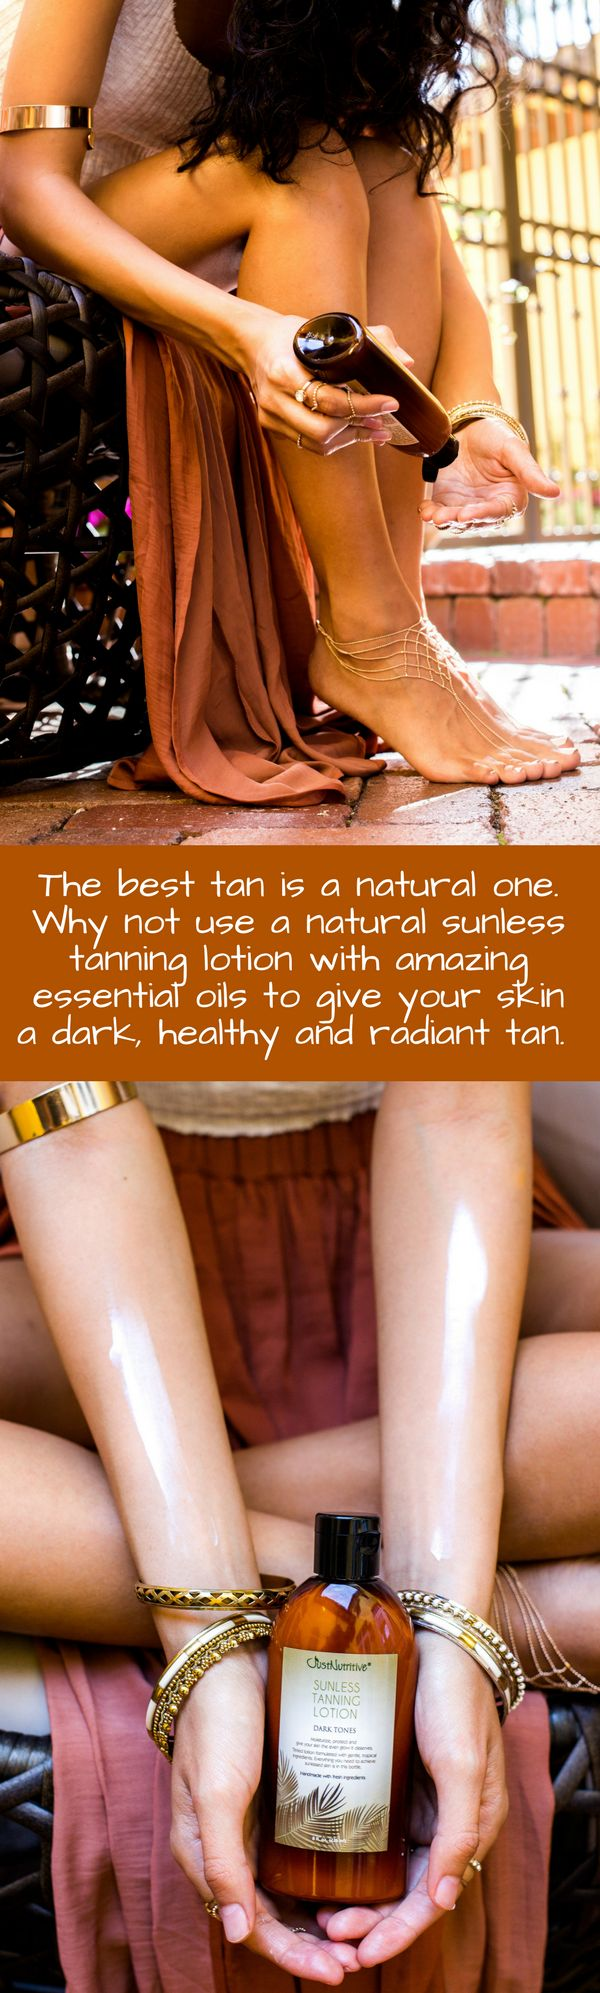 The best tan is a natural one.  Why not use a natural sunless tanning lotion with amazing essential oils to give your skin a dark, healthy and radiant tan.